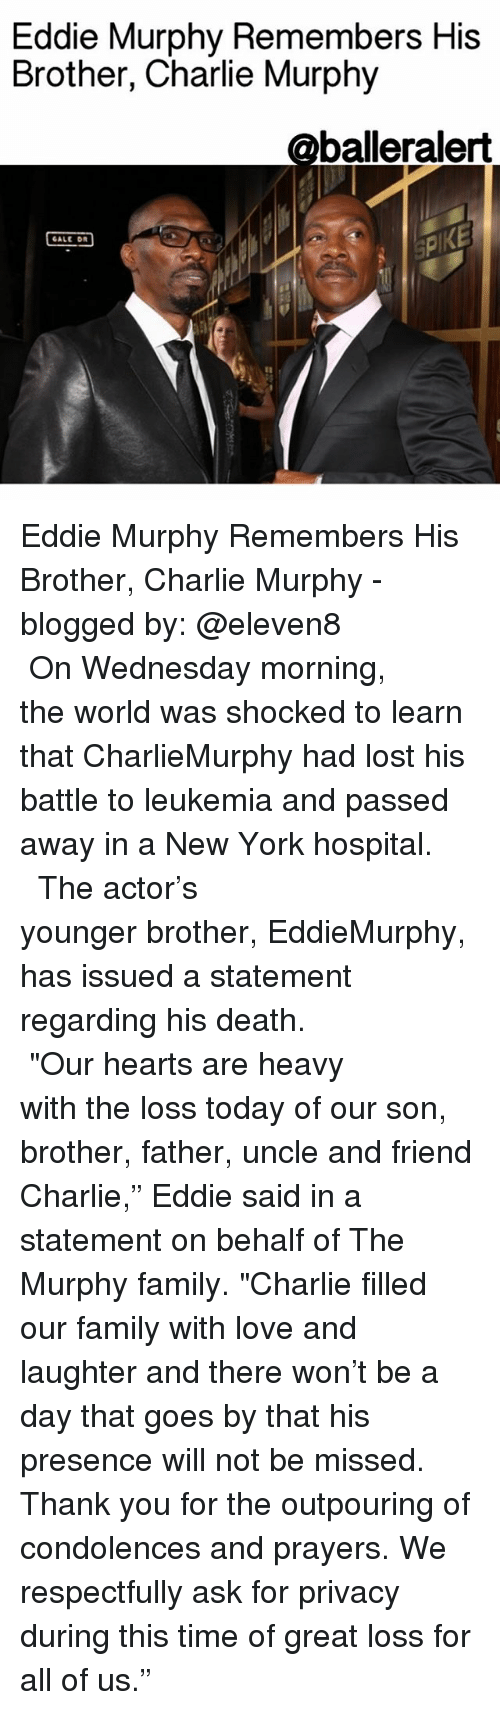 "Eddie Murphy: Eddie Murphy Remembers His  Brother, Charlie Murphy  @balleralert  KE  GALE DR Eddie Murphy Remembers His Brother, Charlie Murphy - blogged by: @eleven8 ⠀⠀⠀⠀⠀⠀⠀⠀⠀ ⠀⠀⠀⠀⠀⠀⠀⠀⠀ On Wednesday morning, the world was shocked to learn that CharlieMurphy had lost his battle to leukemia and passed away in a New York hospital. ⠀⠀⠀⠀⠀⠀⠀⠀⠀ ⠀⠀⠀⠀⠀⠀⠀⠀⠀ The actor's younger brother, EddieMurphy, has issued a statement regarding his death. ⠀⠀⠀⠀⠀⠀⠀⠀⠀ ⠀⠀⠀⠀⠀⠀⠀⠀⠀ ""Our hearts are heavy with the loss today of our son, brother, father, uncle and friend Charlie,"" Eddie said in a statement on behalf of The Murphy family. ""Charlie filled our family with love and laughter and there won't be a day that goes by that his presence will not be missed. Thank you for the outpouring of condolences and prayers. We respectfully ask for privacy during this time of great loss for all of us."""